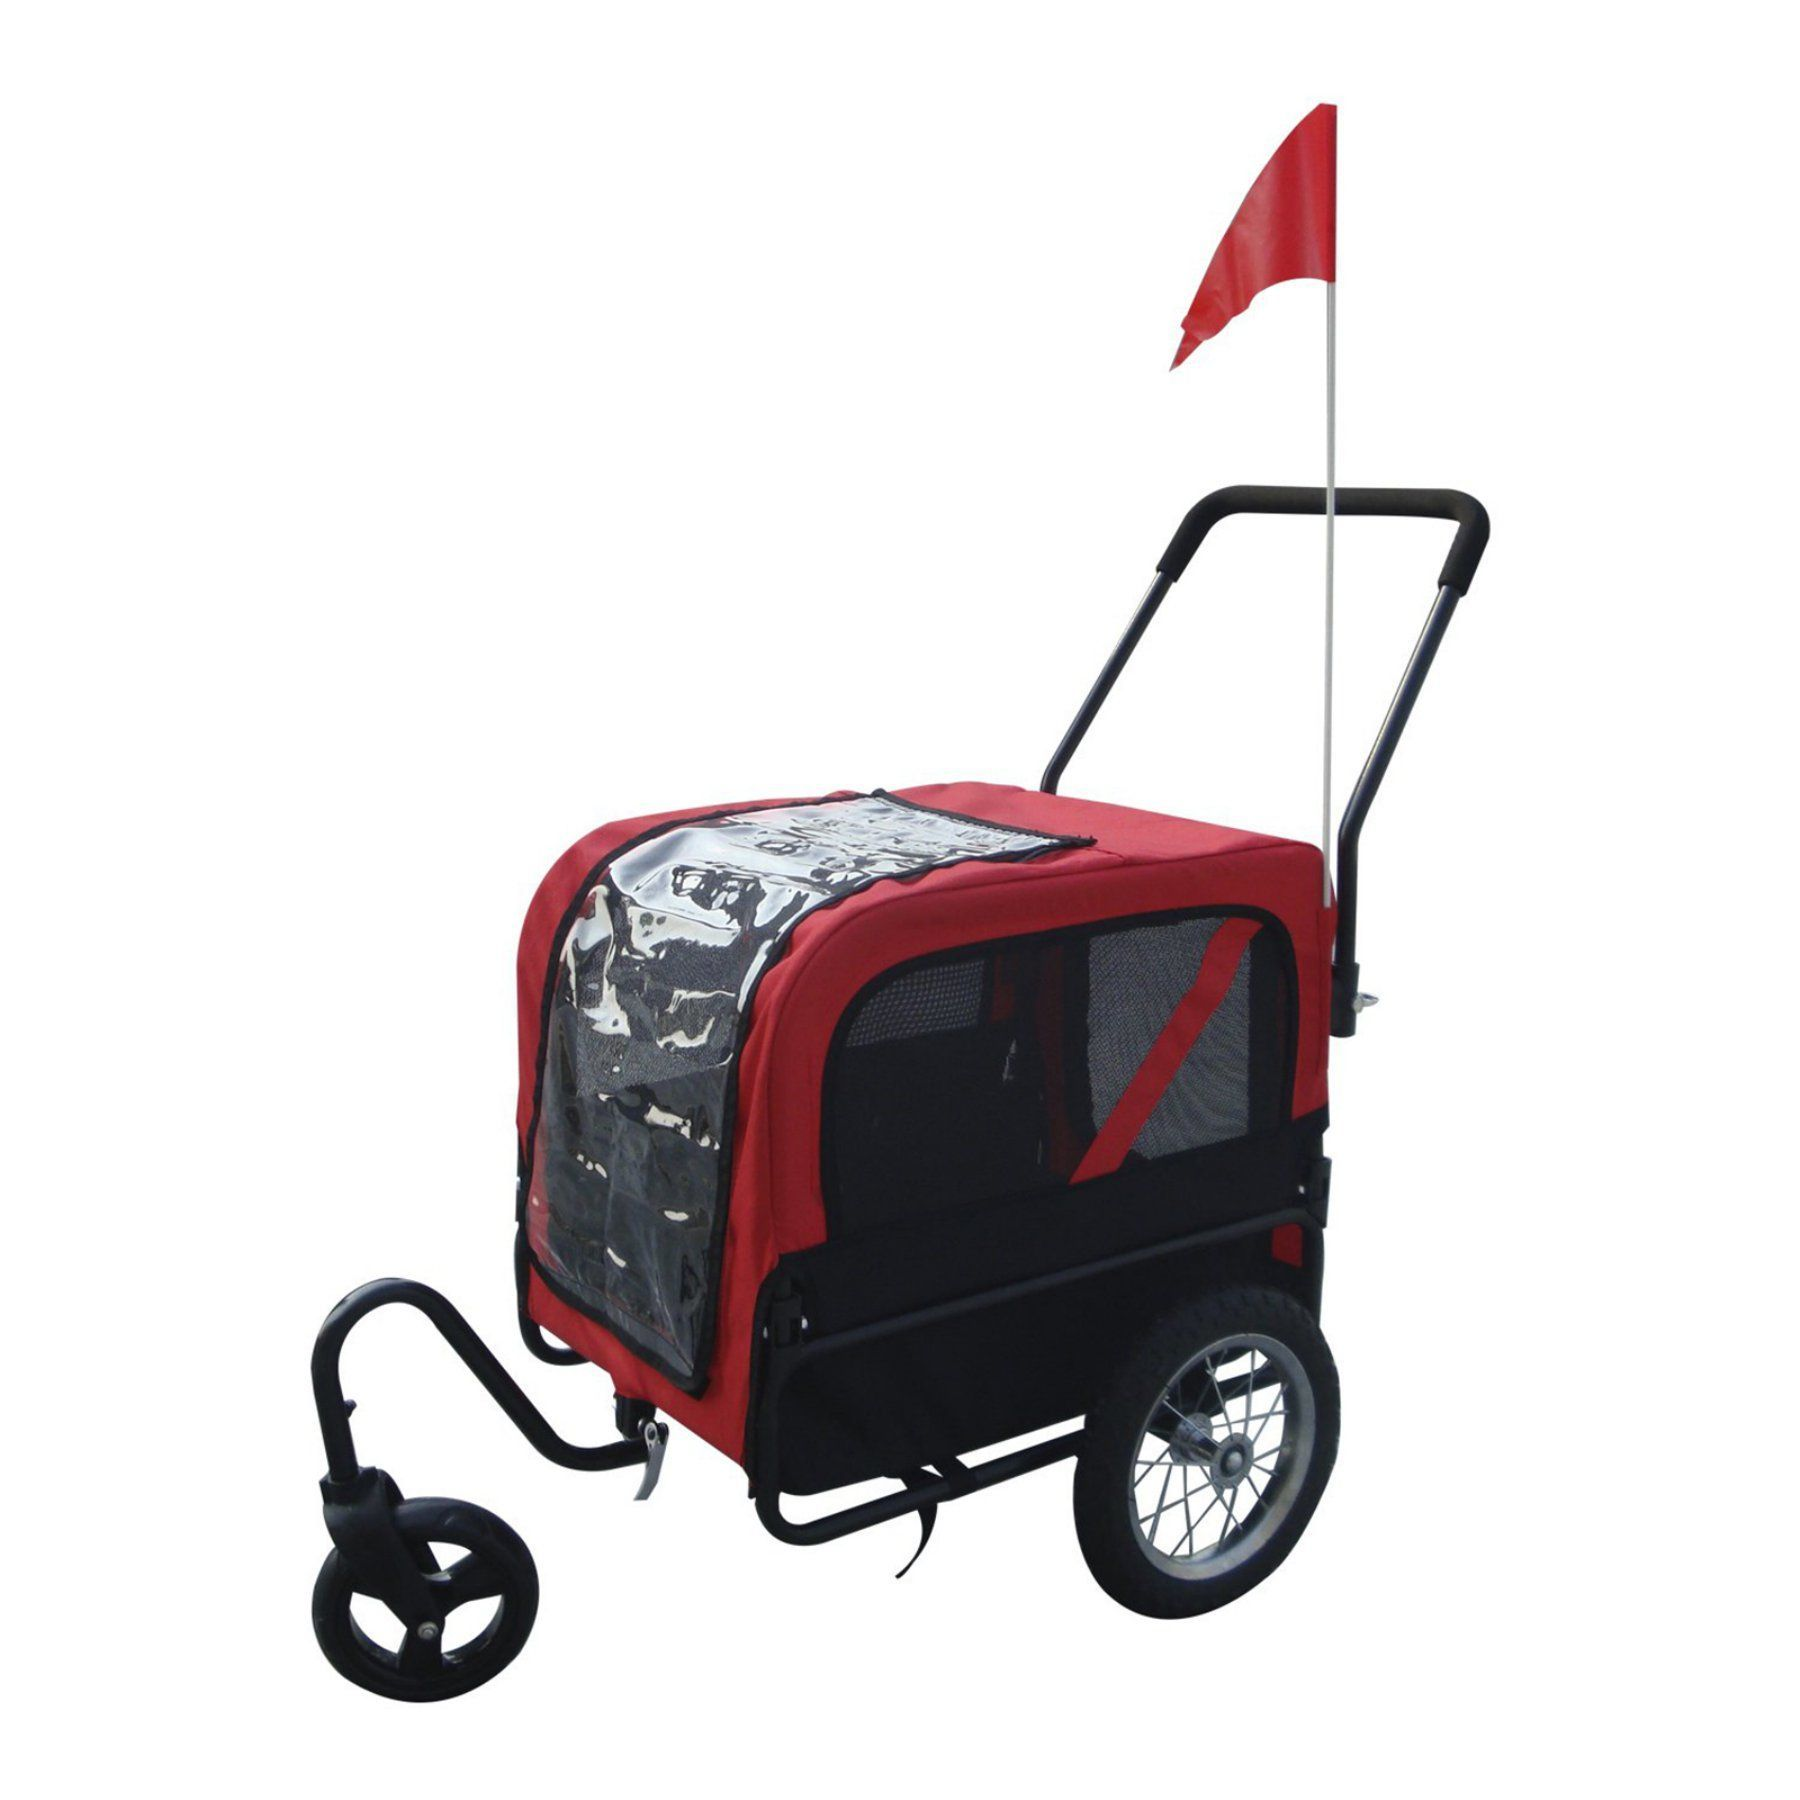 Aosom Elite Jr Dog Bike Trailer and Stroller with Swivel Wheel 5663 1334R